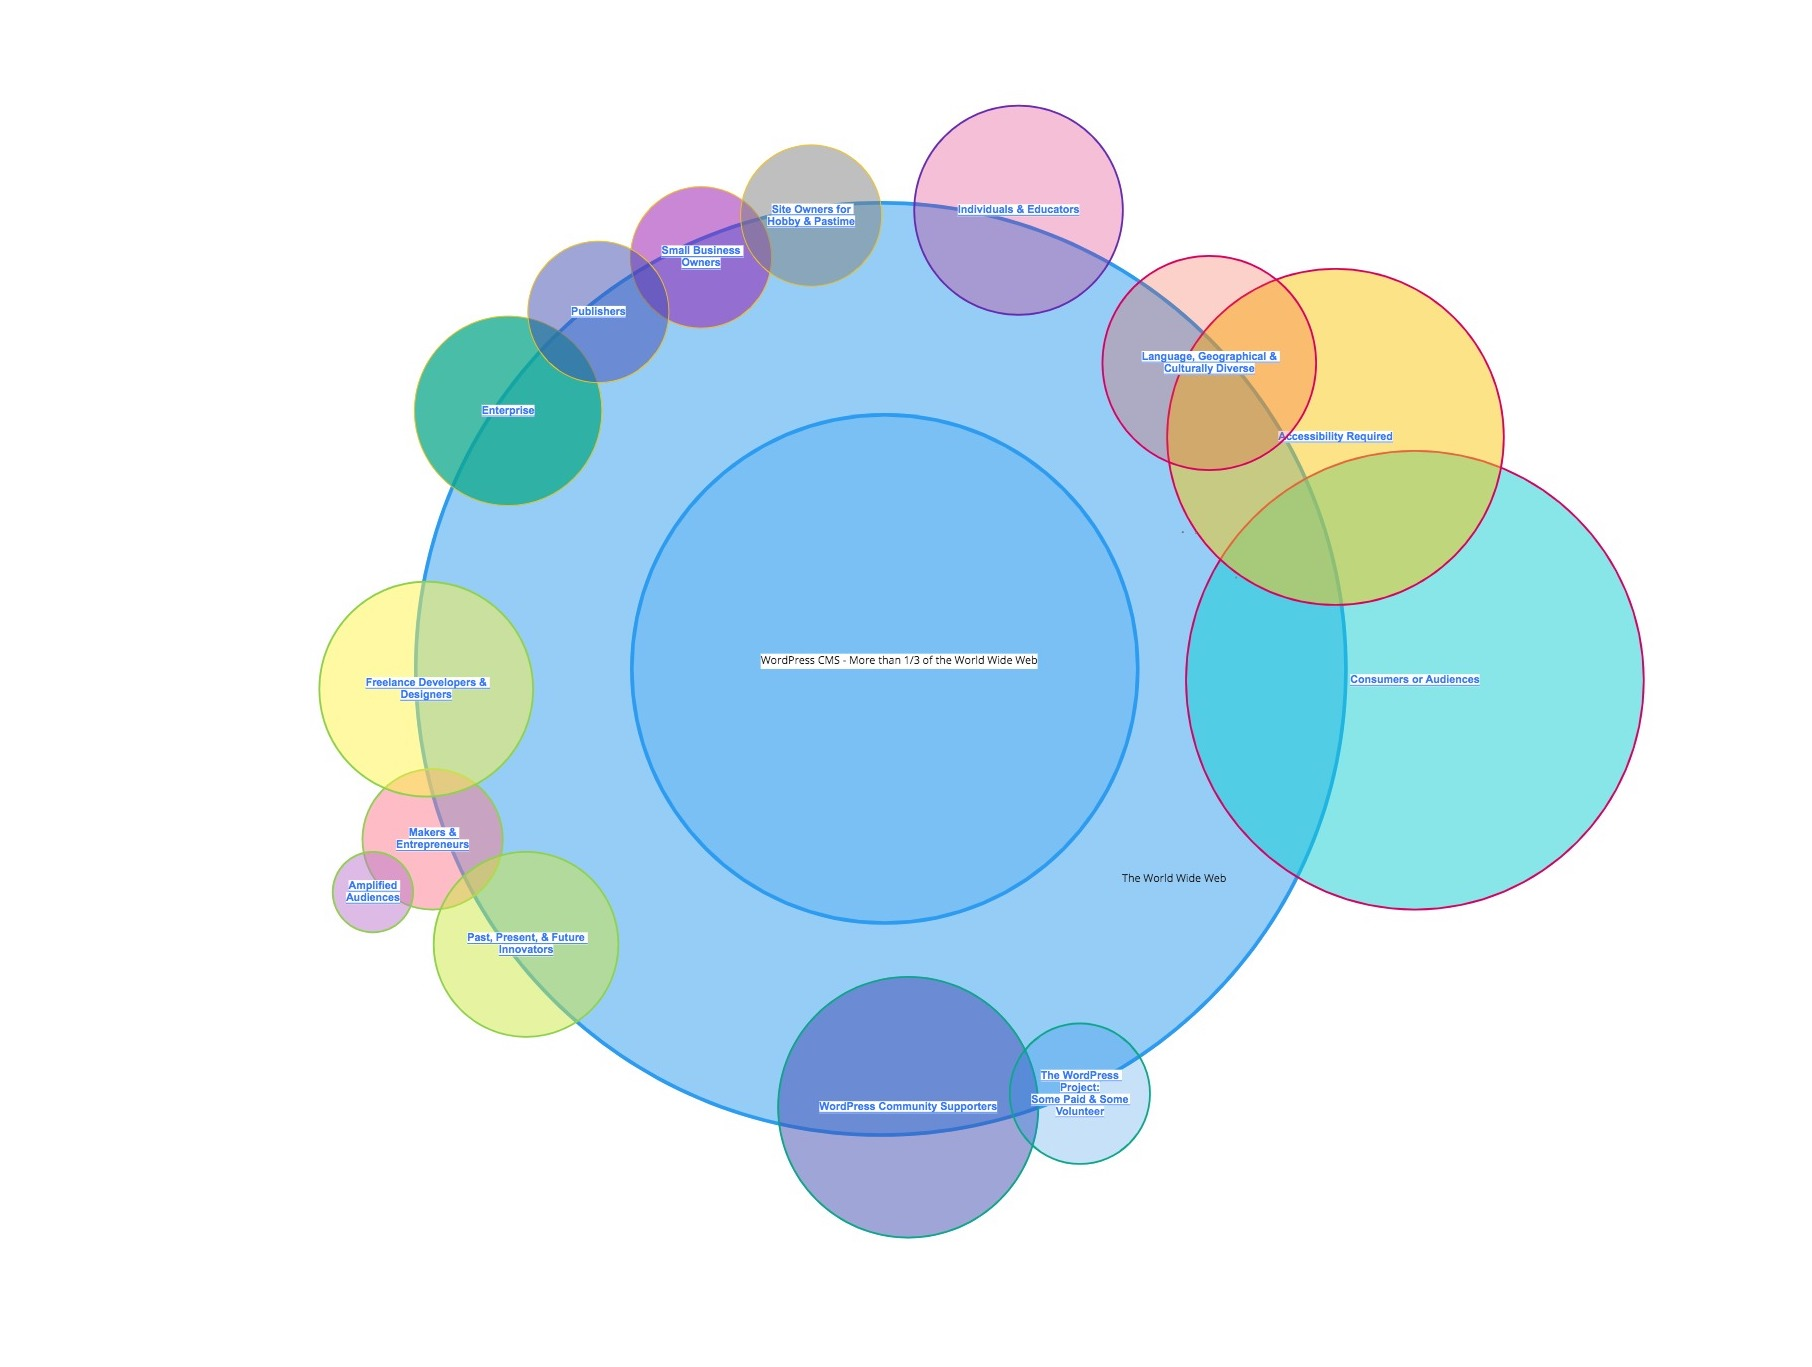 Diagram of Grouping of Stakeholders WPGovernance MindMap